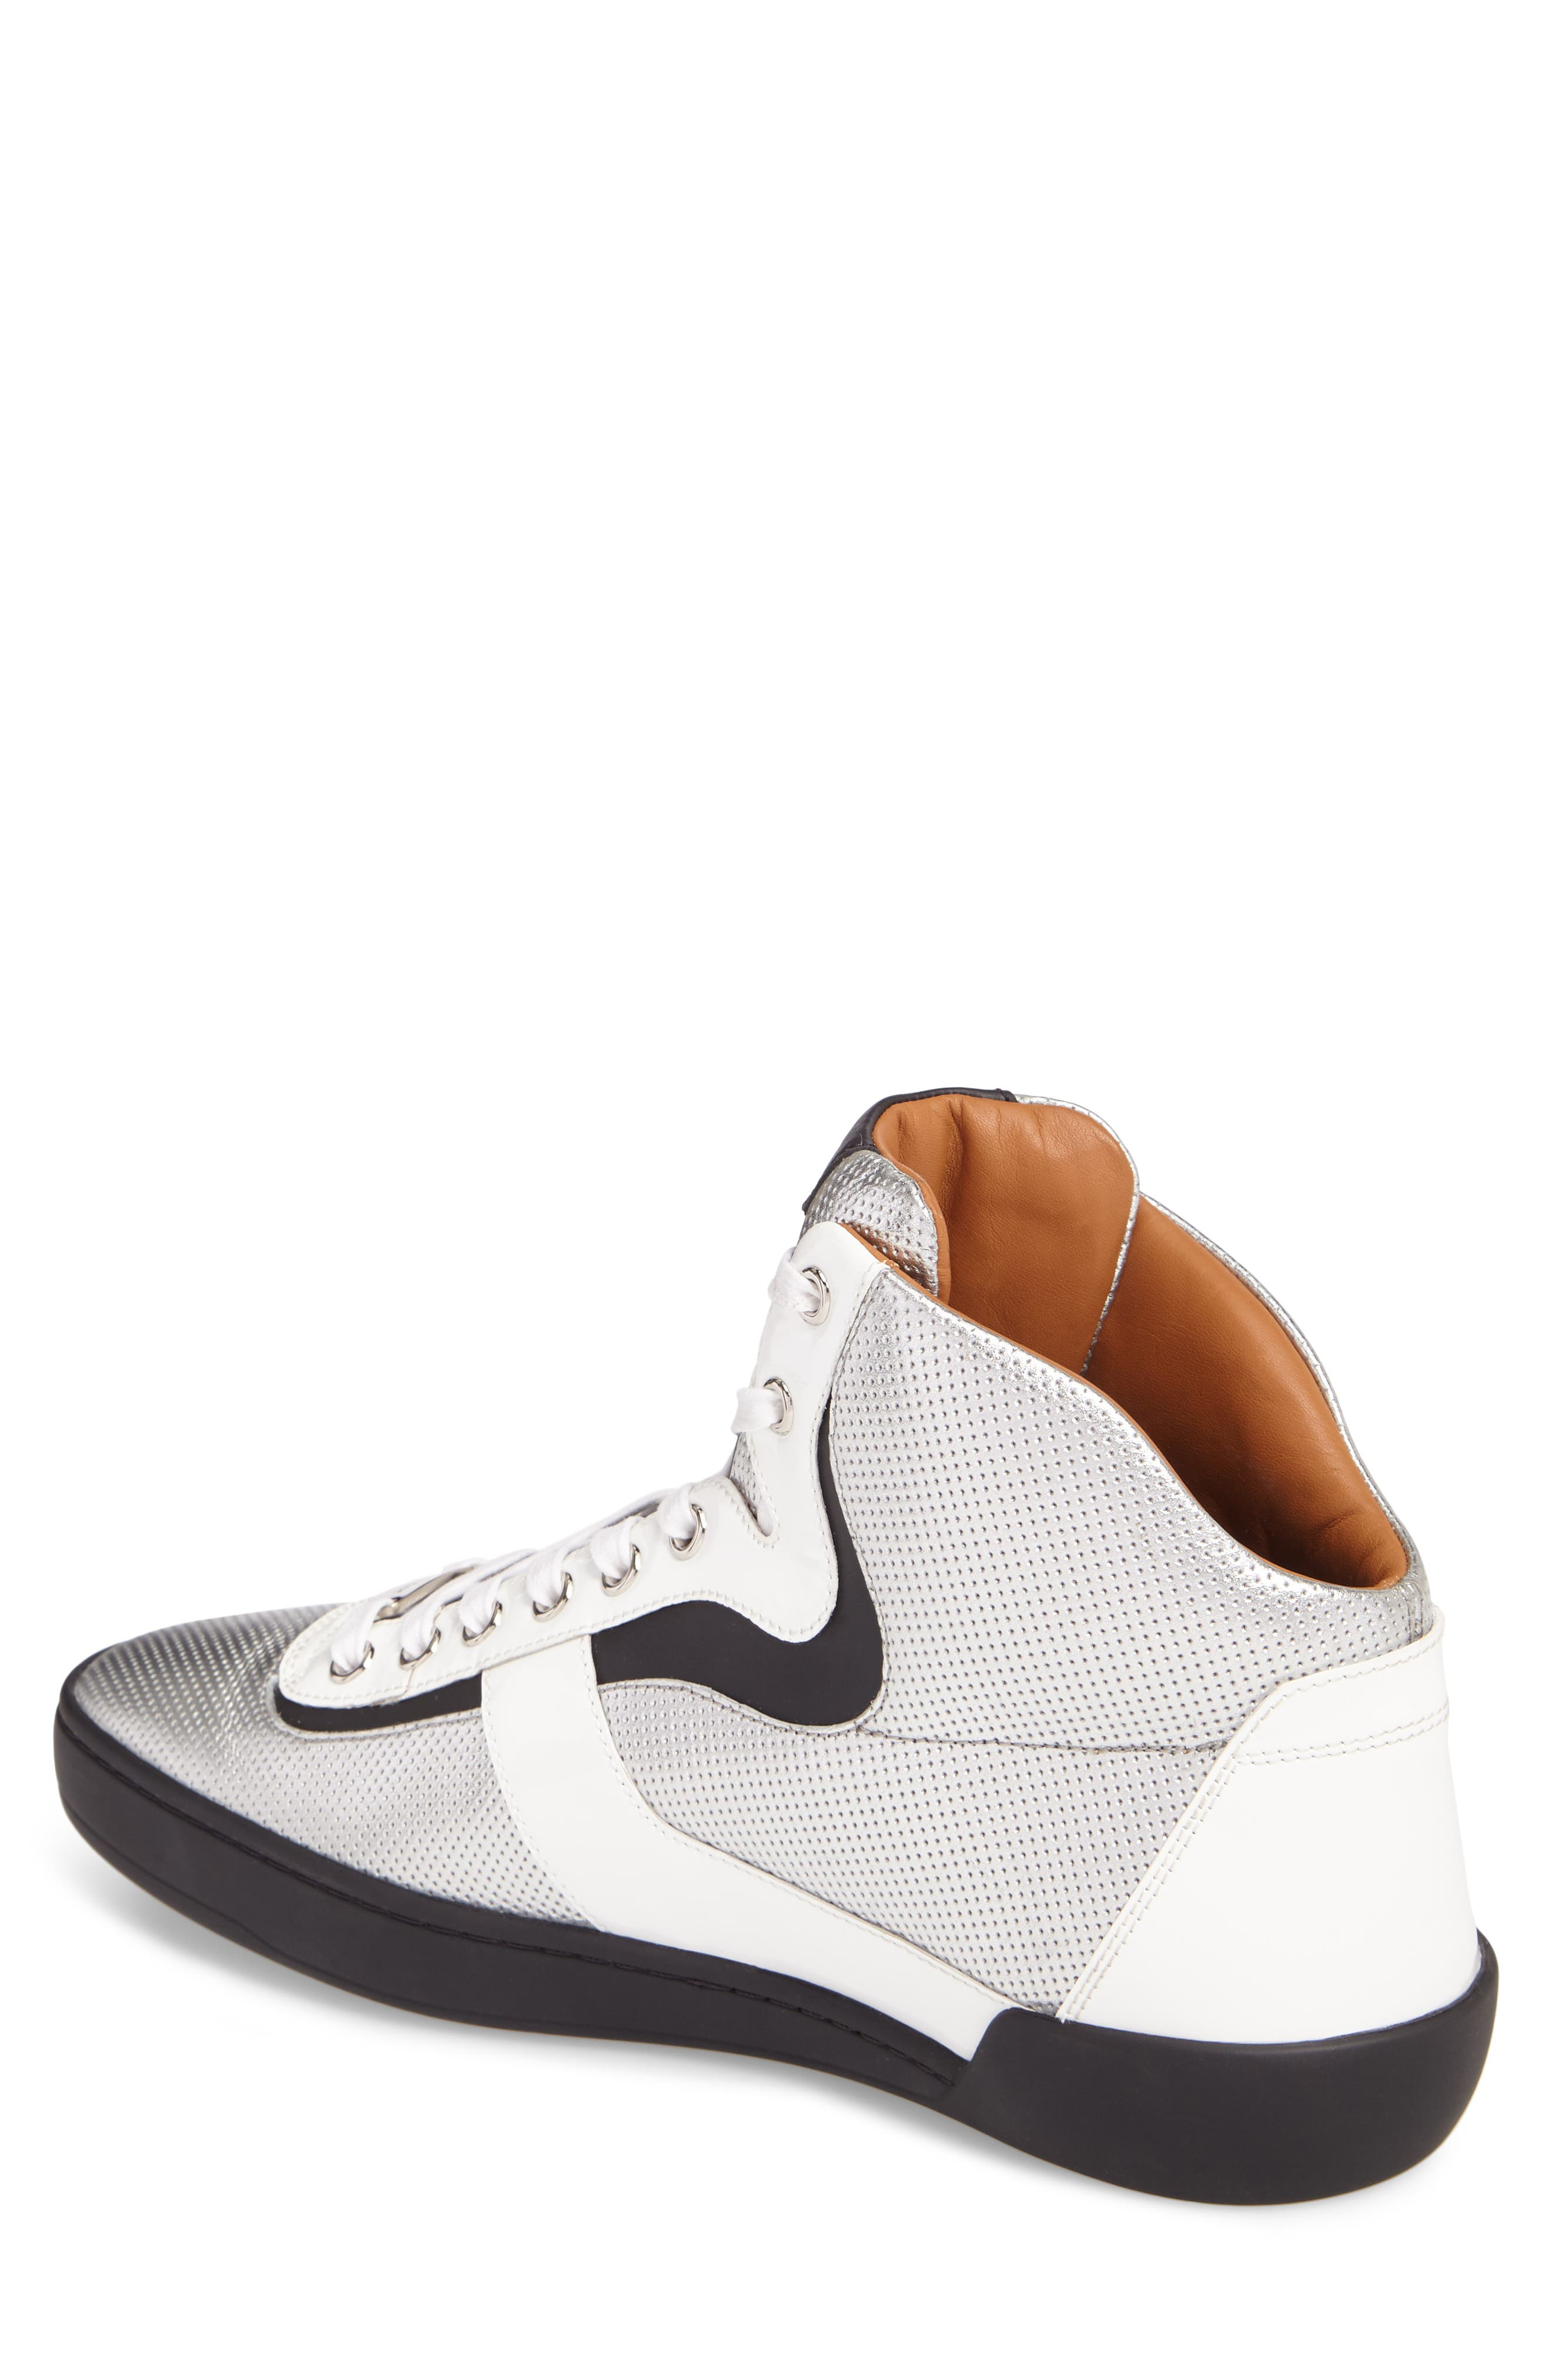 Eroy High Top Sneaker,                             Alternate thumbnail 2, color,                             Silver